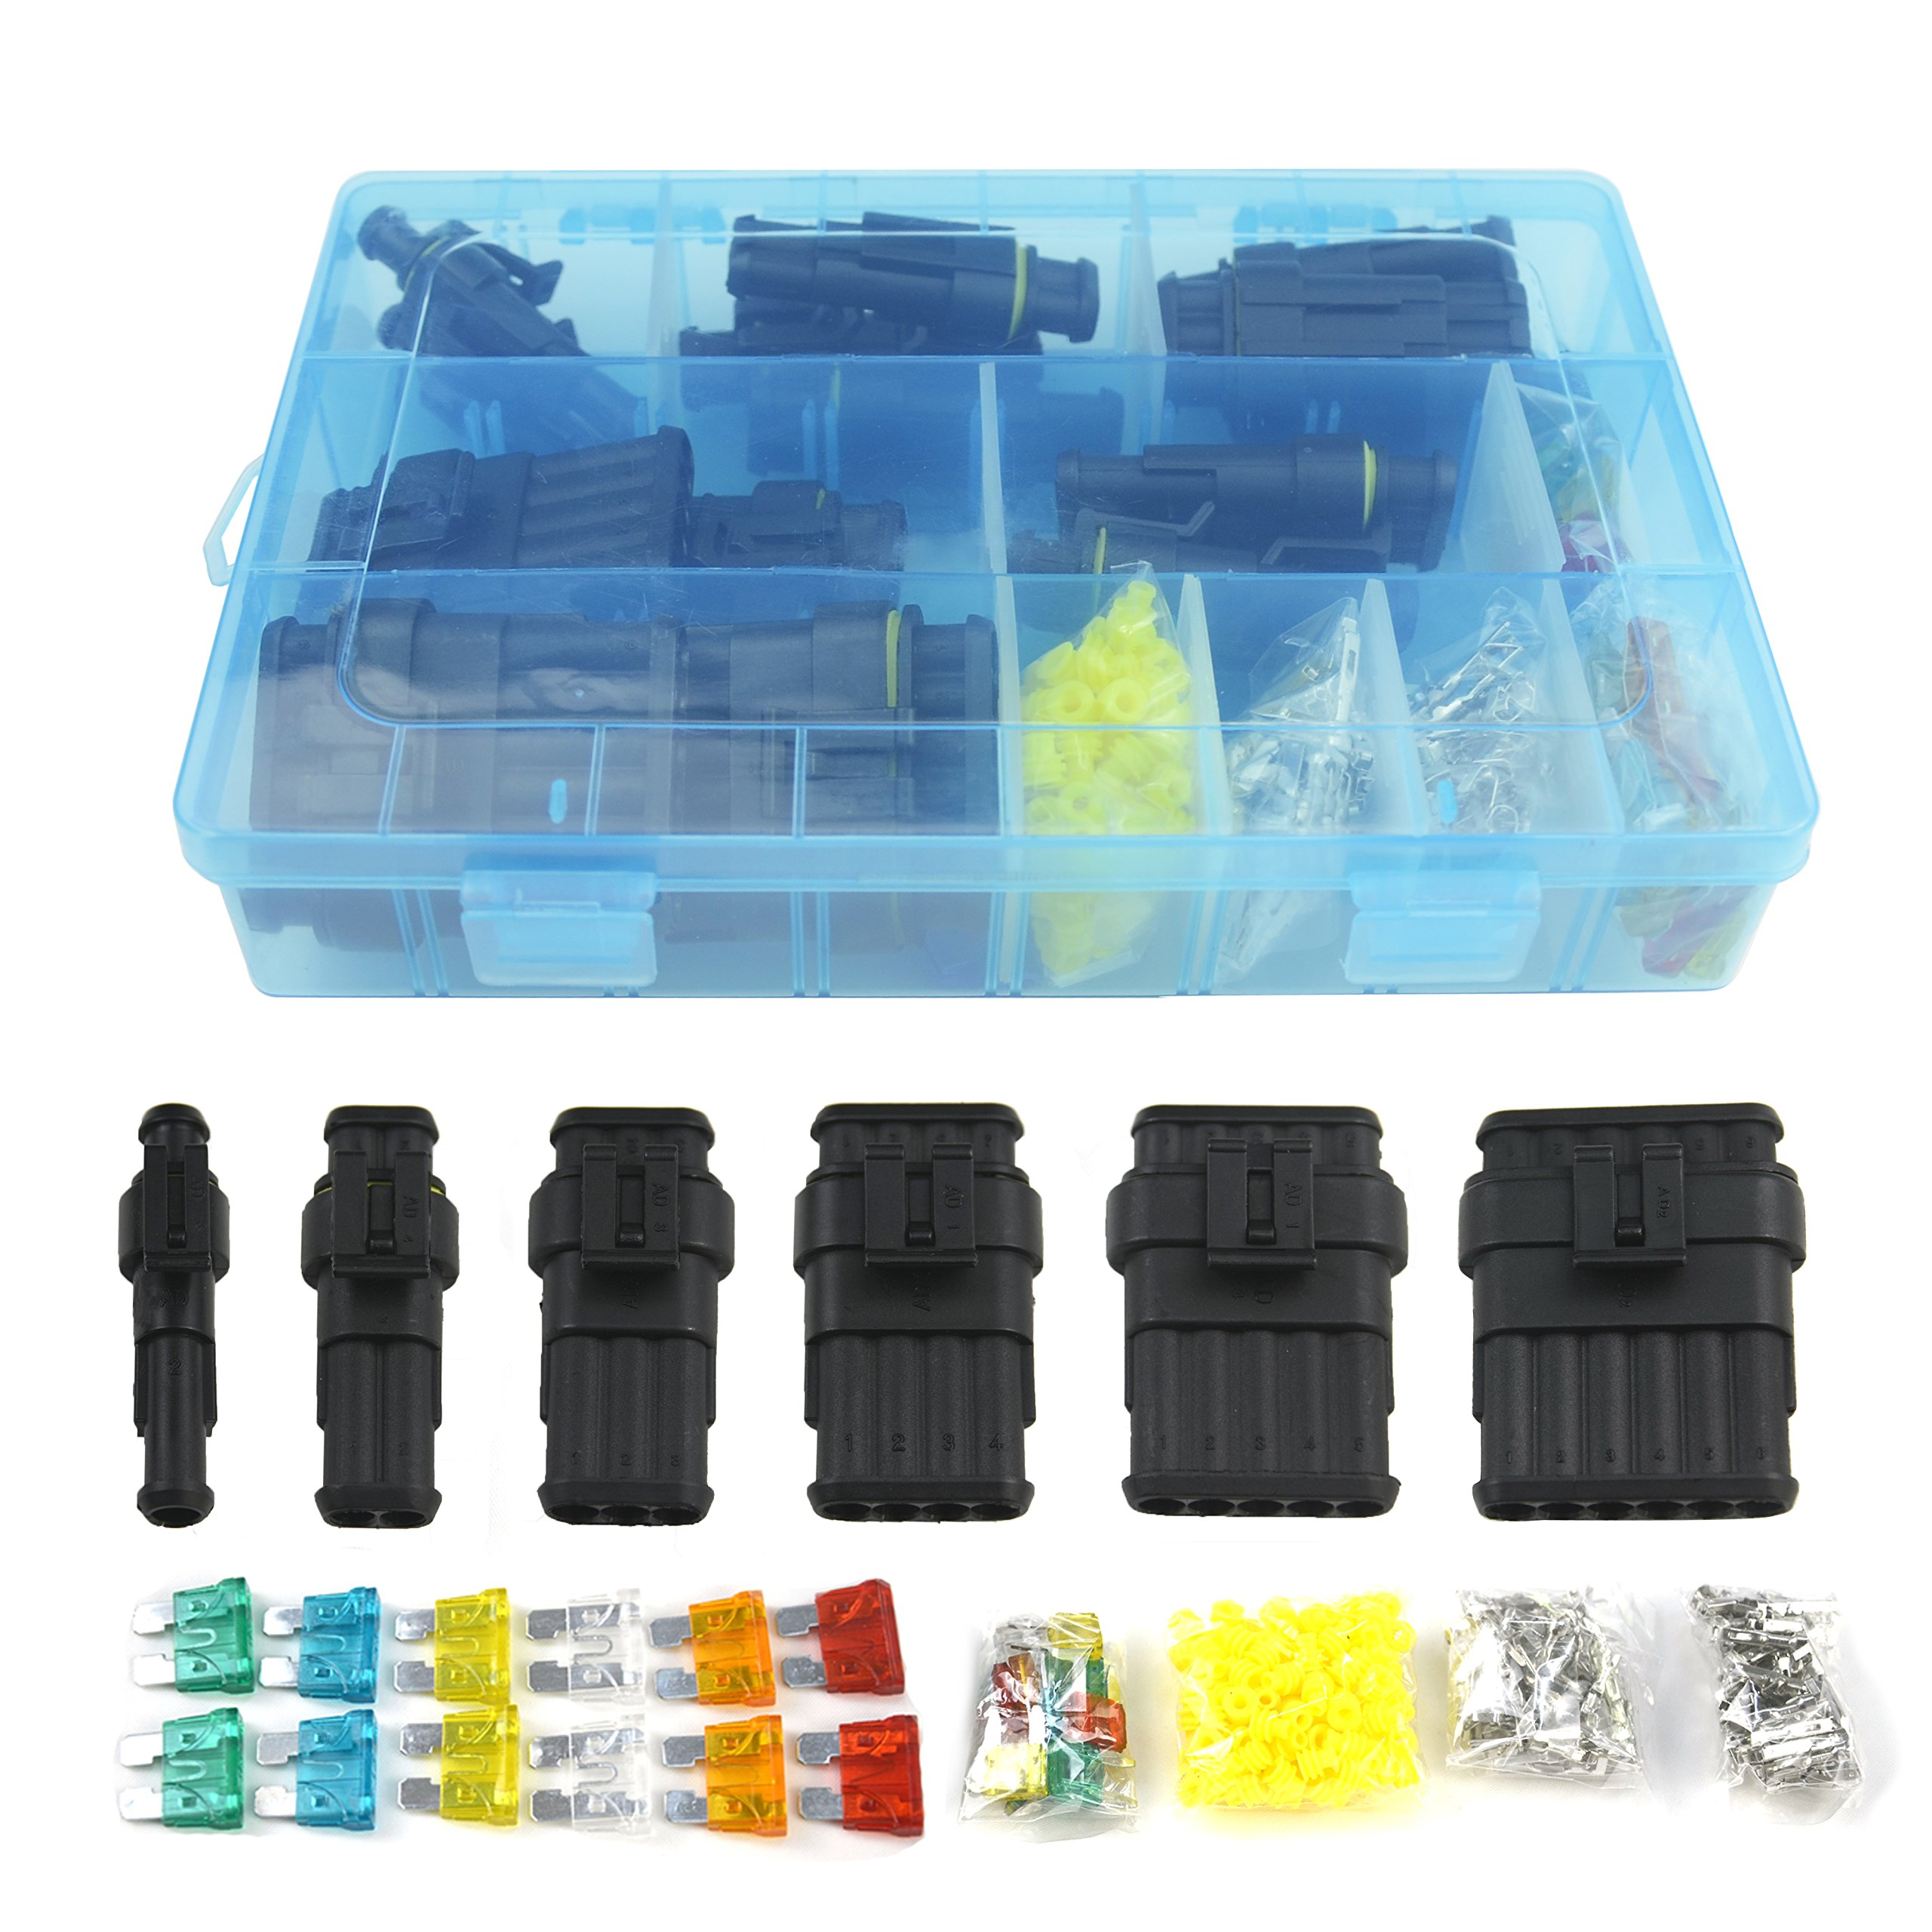 14 Set Car Waterproof Electrical Connector Plug Terminals Heat Fuse Box Terminal Pin Shrink 1 2 3 4 5 6 Way Fuses Blue Clear Jh867 001new Connectors